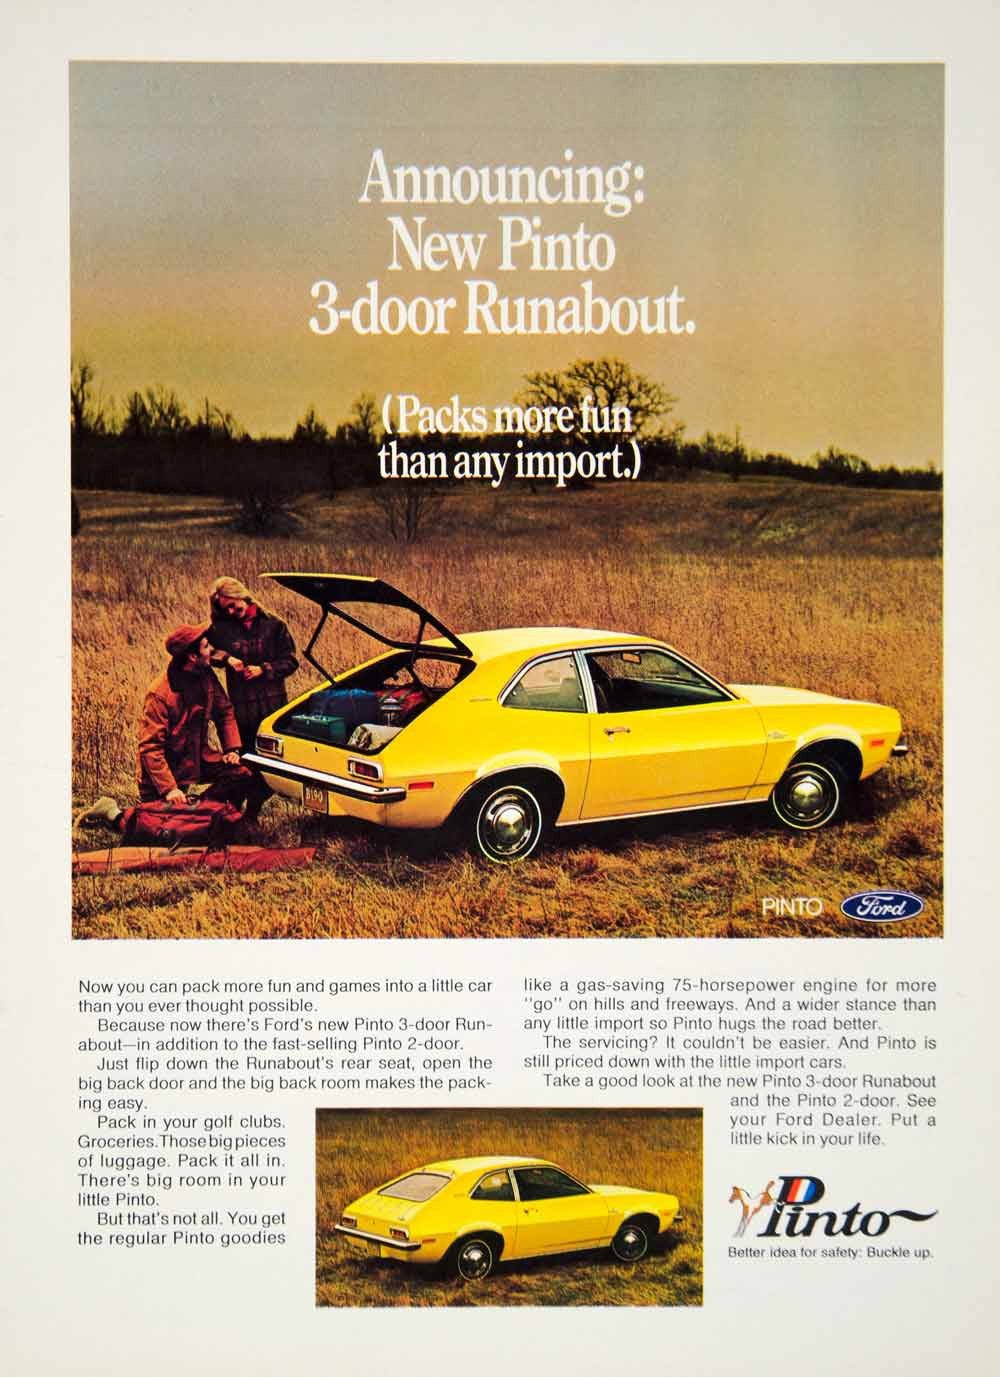 ford pinto essay Free essay: ford pinto case: the invisible corporate human pricetag in this  essay, i will argue that ford motor company's business behavior.